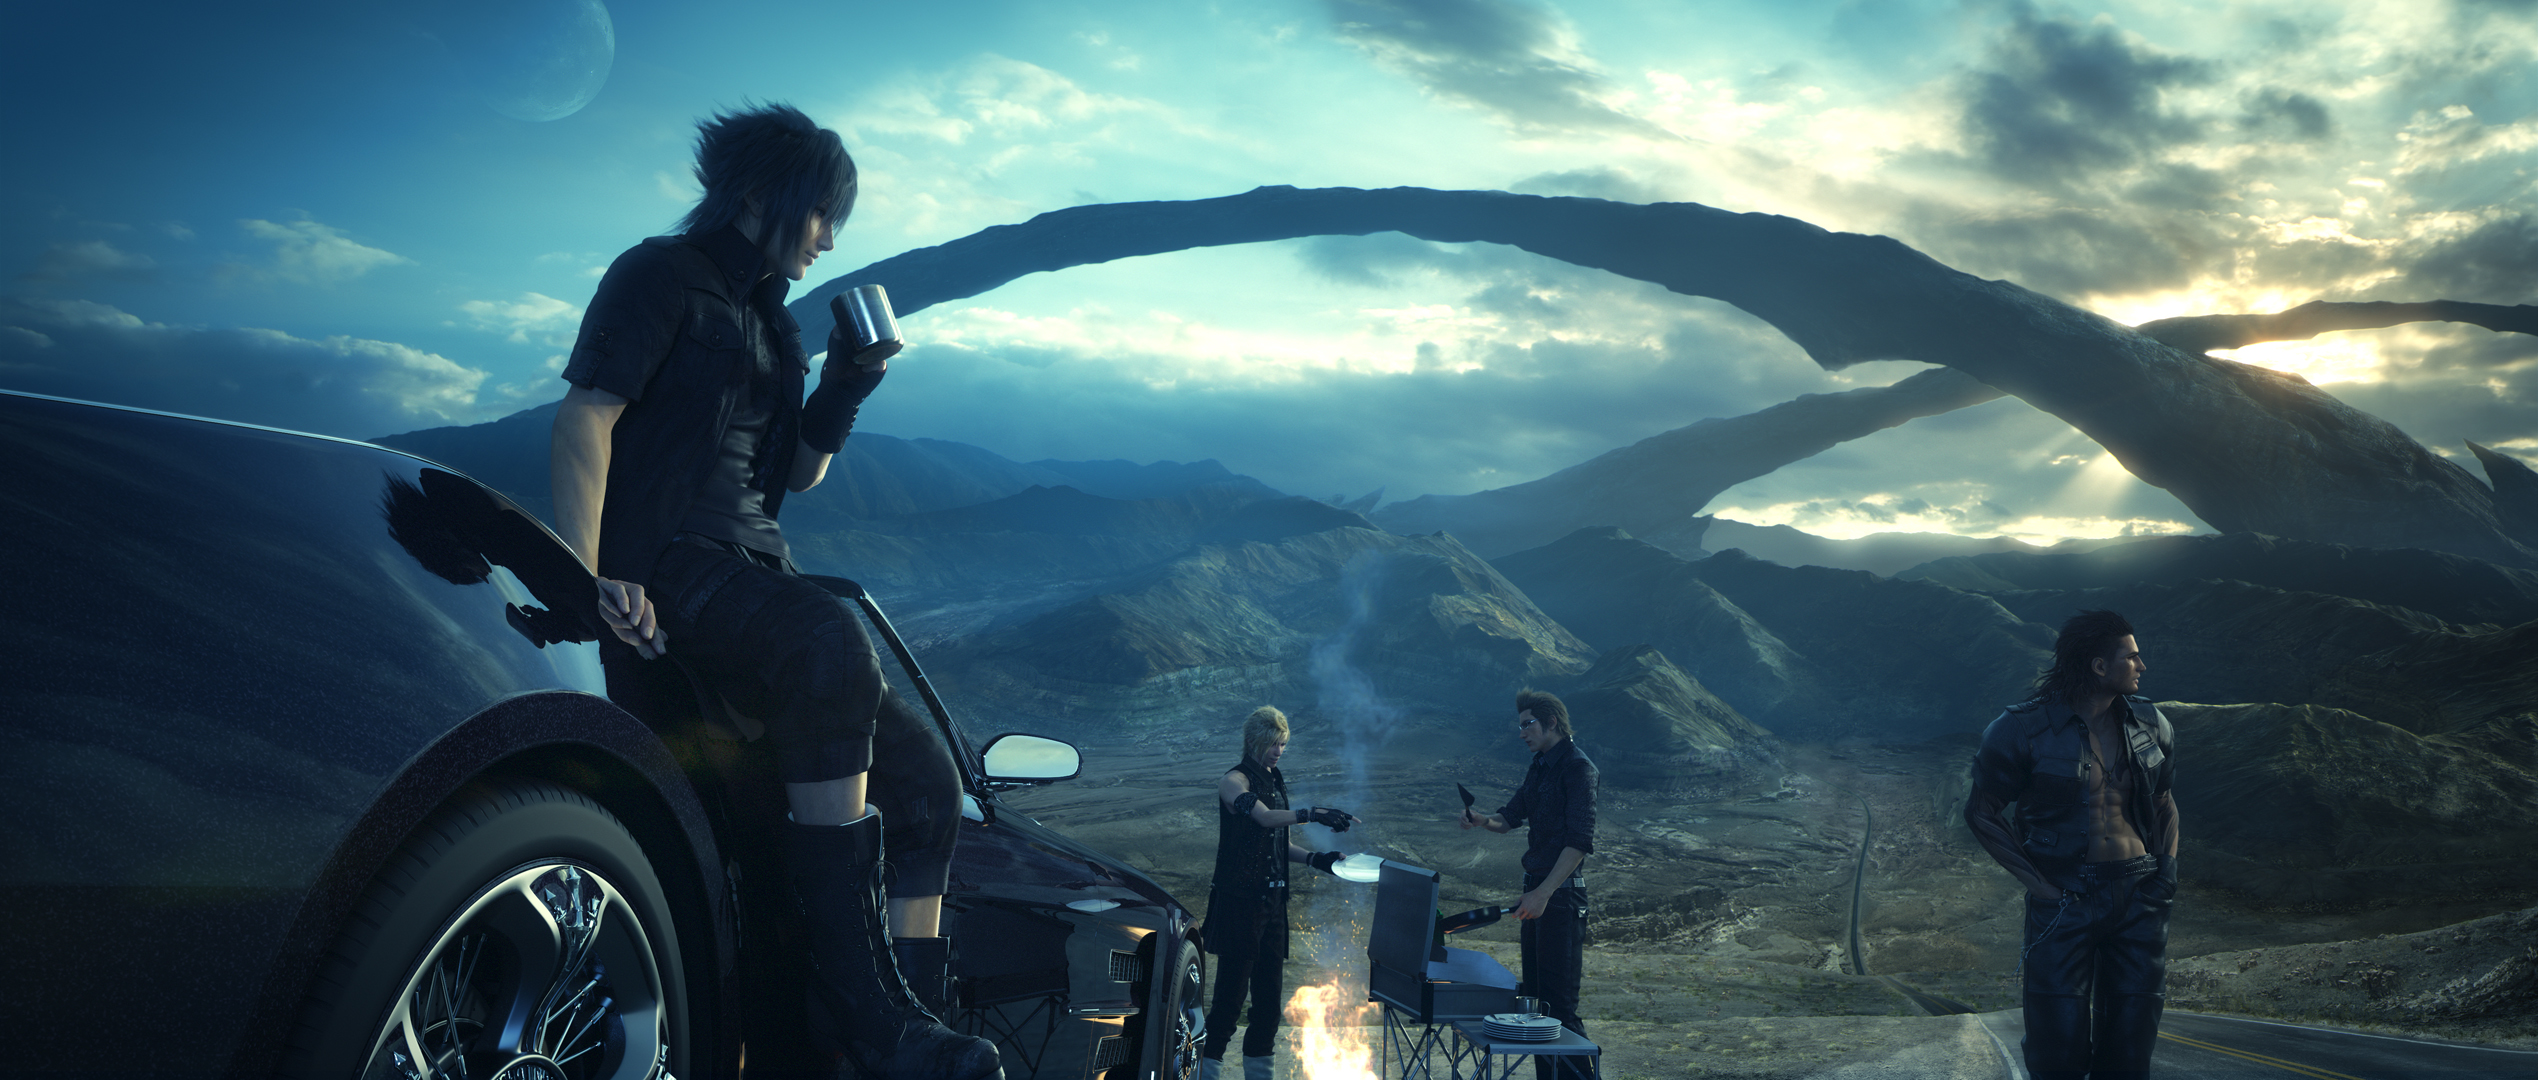 Final Fantasy XV hanging out